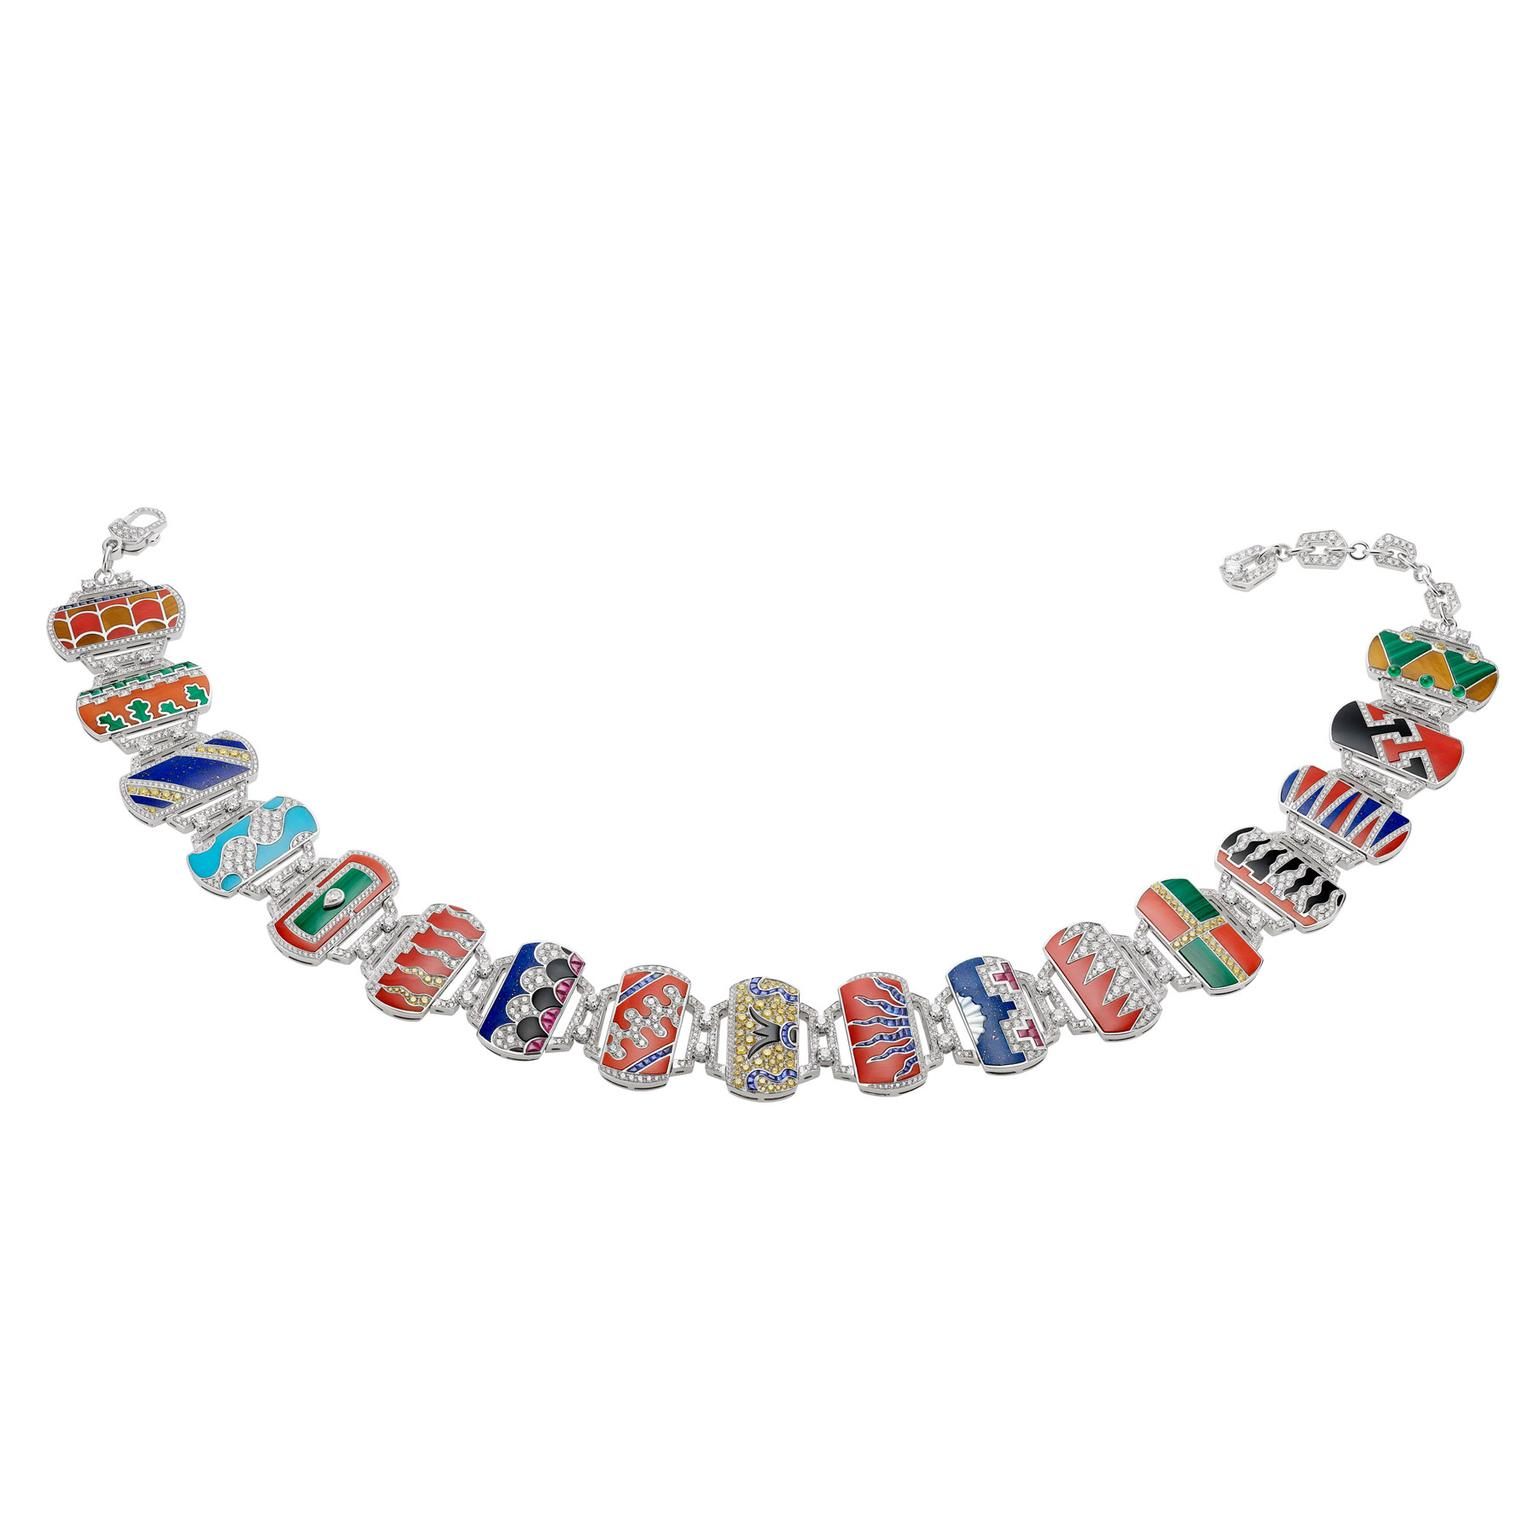 Bulgari Il Palio di Siena Festa necklace